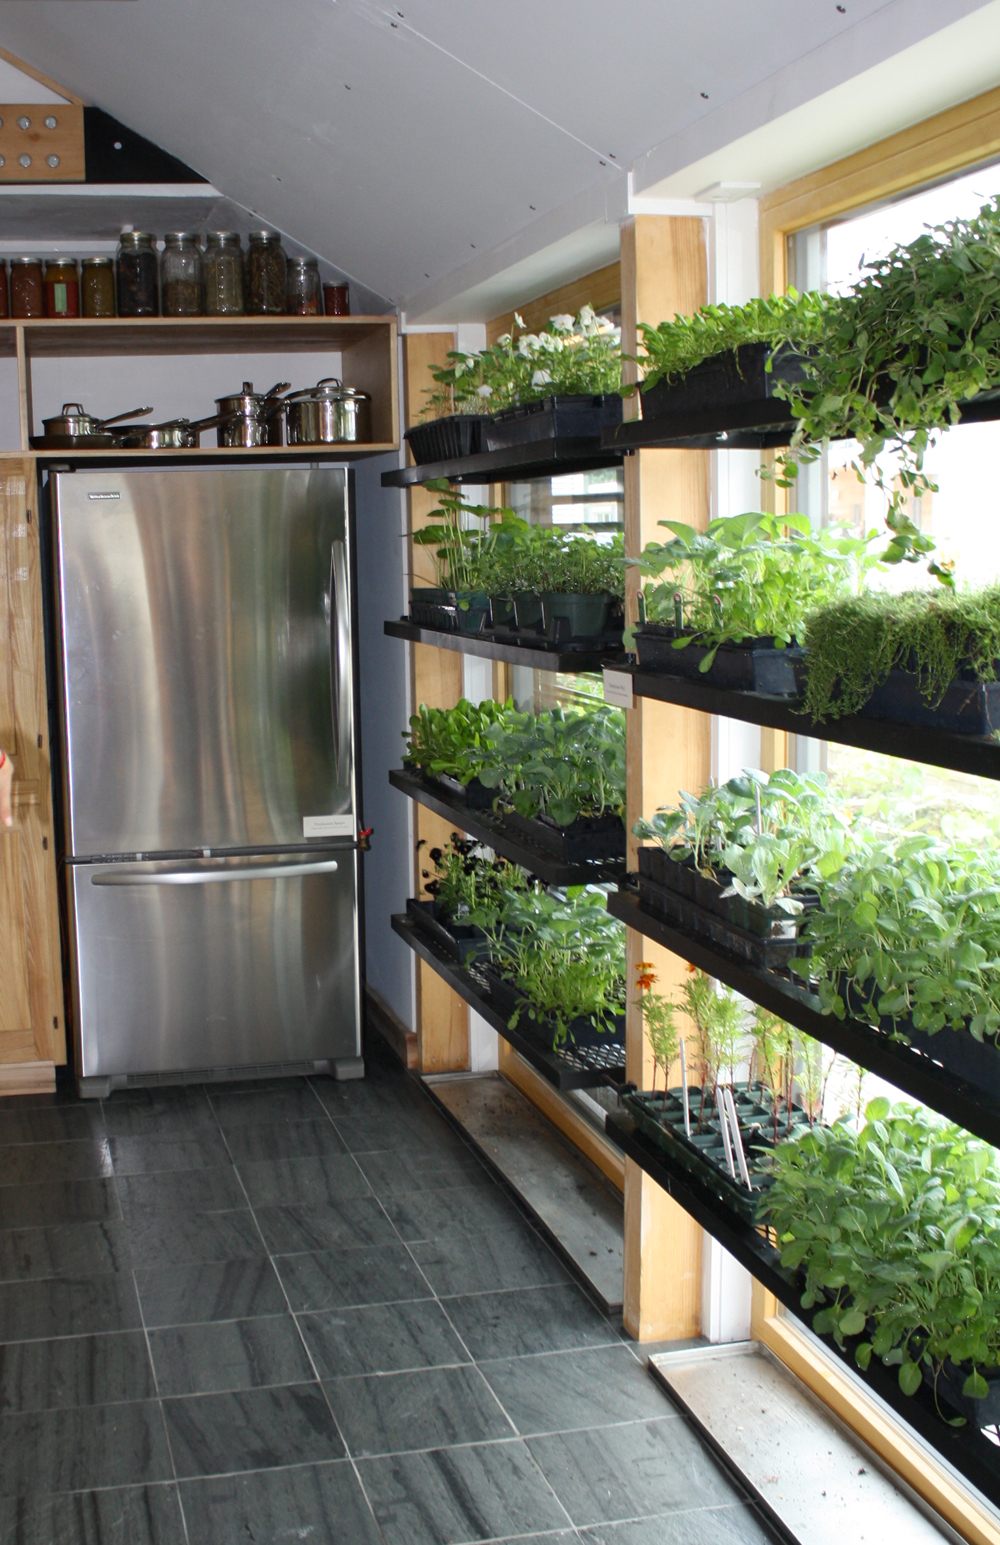 Kitchen Garden Planter Solar Decathlon Review Day 2 Products And Process Truexcullins